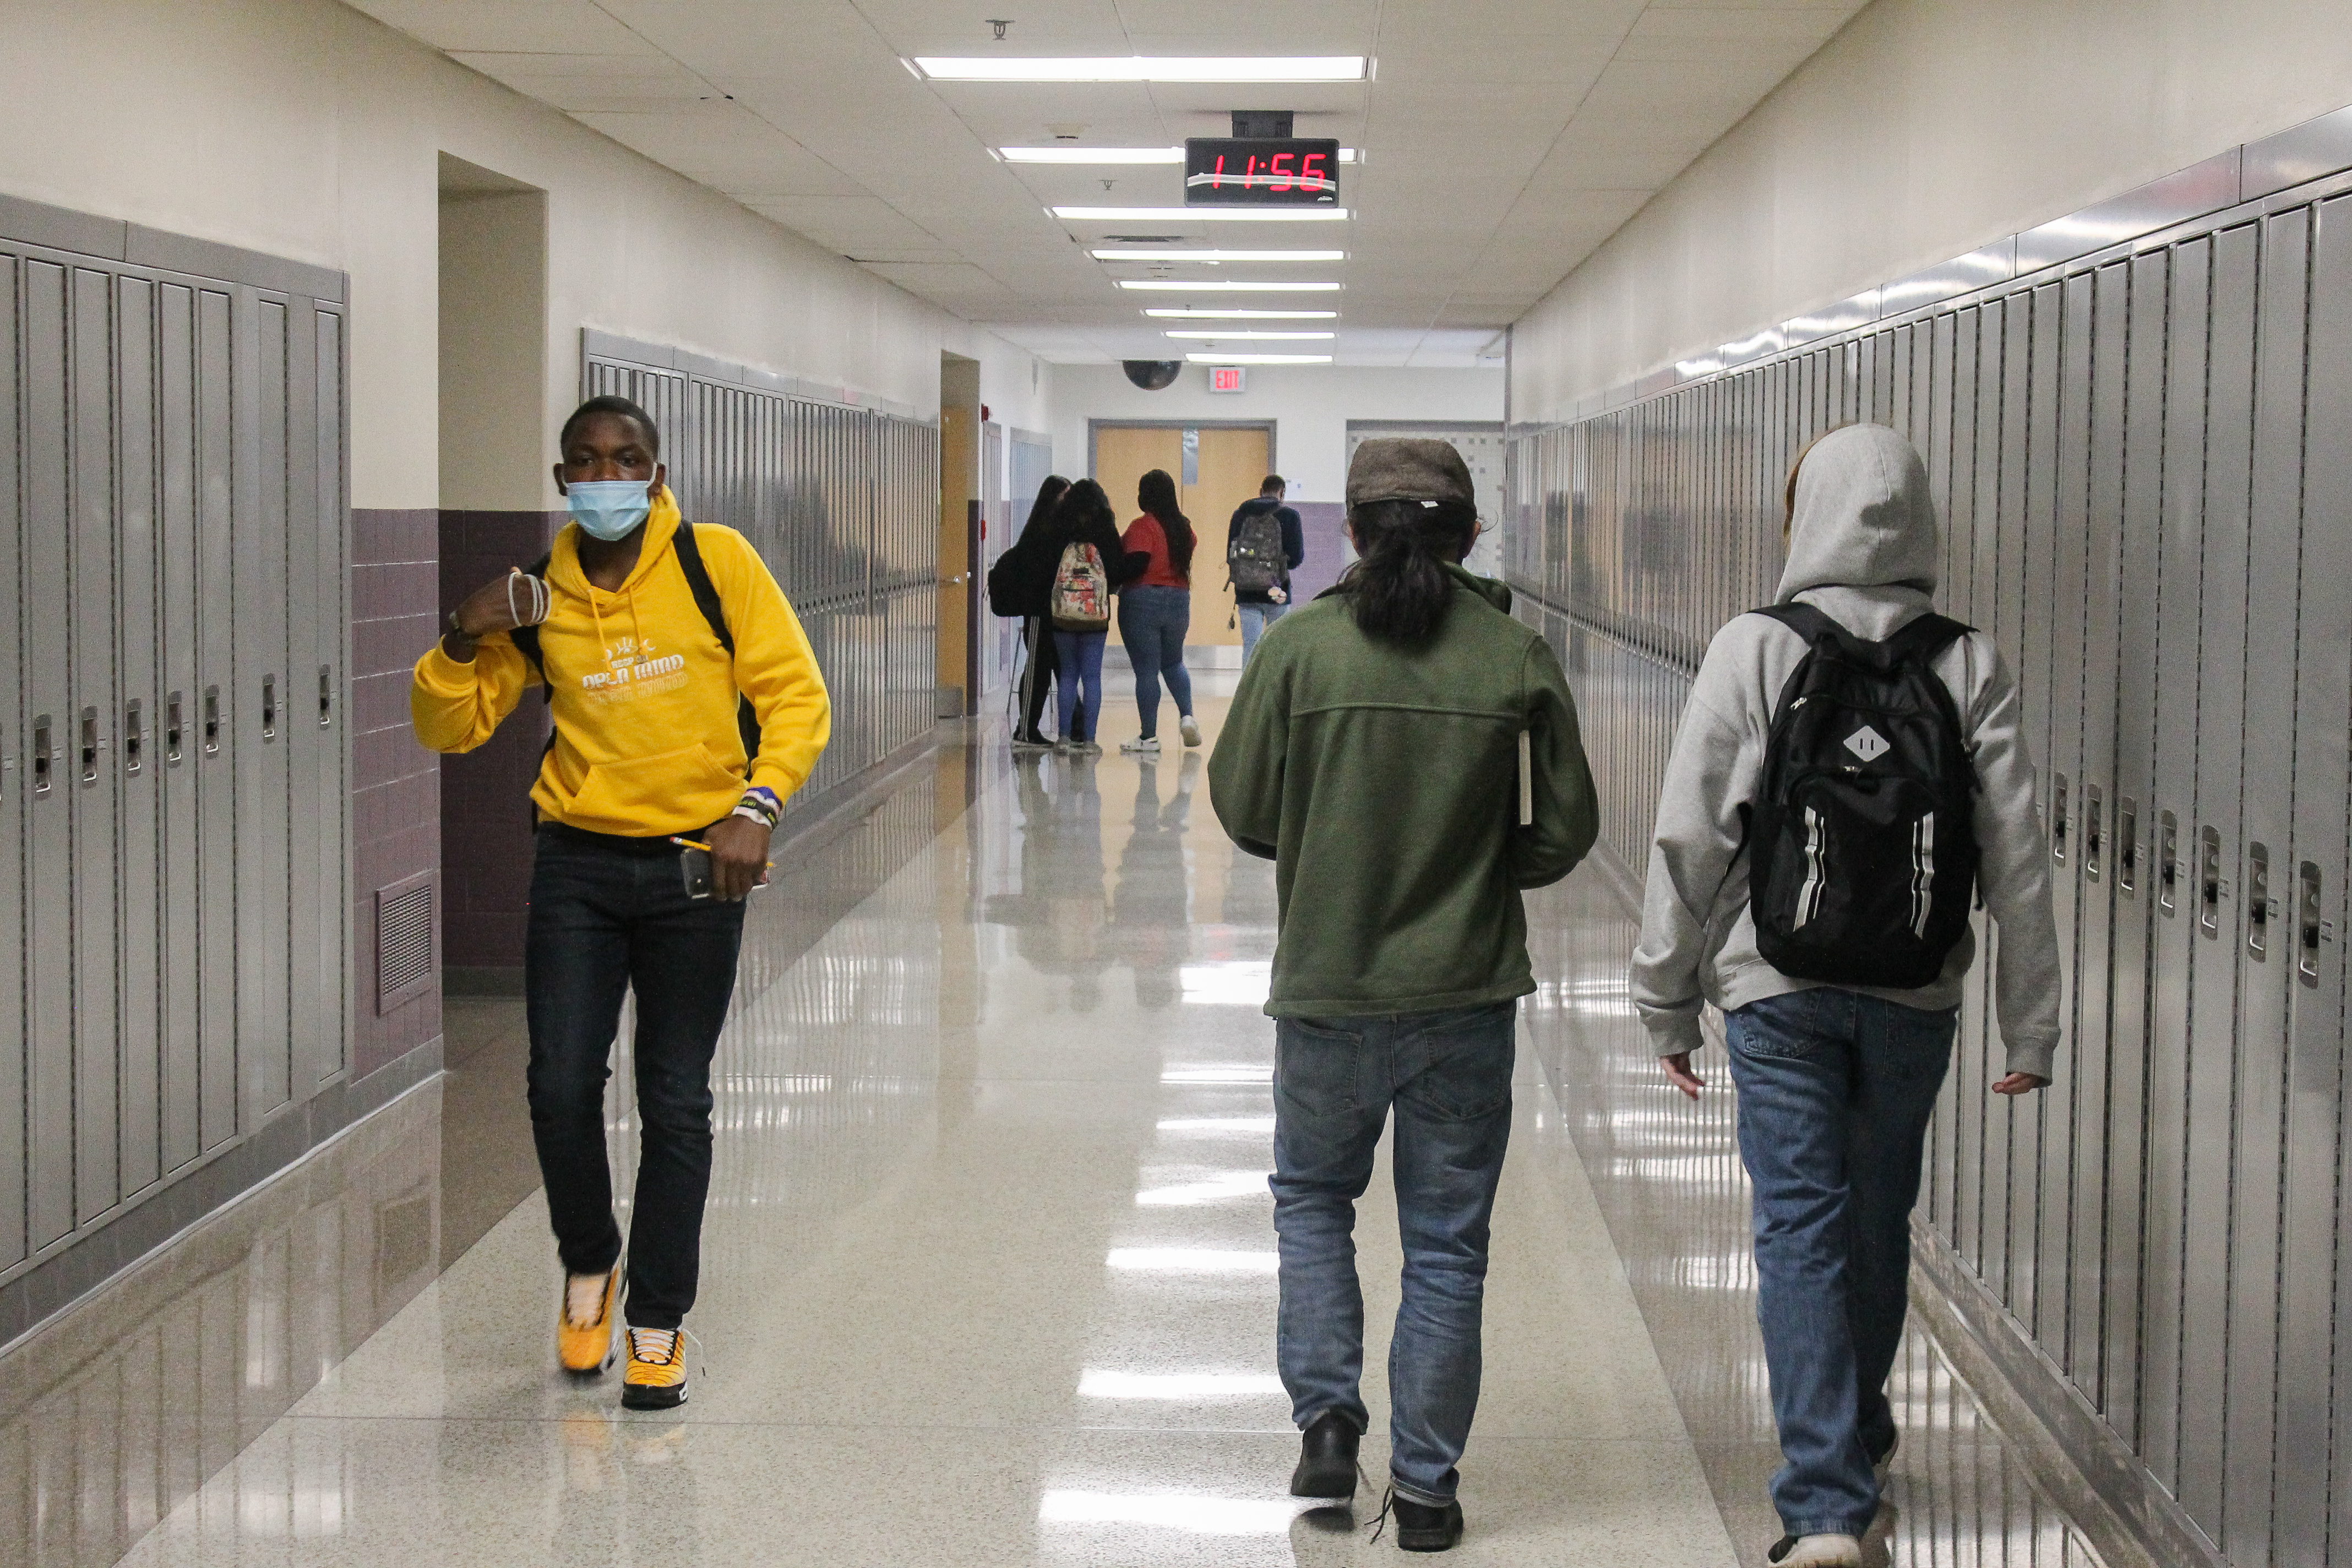 Scenes from Ben Davis High School in Indianapolis, Ind. on Friday, April 9, 2021. This was the first week back full-time since the beginning of the pandemic for Wayne Township Schools.